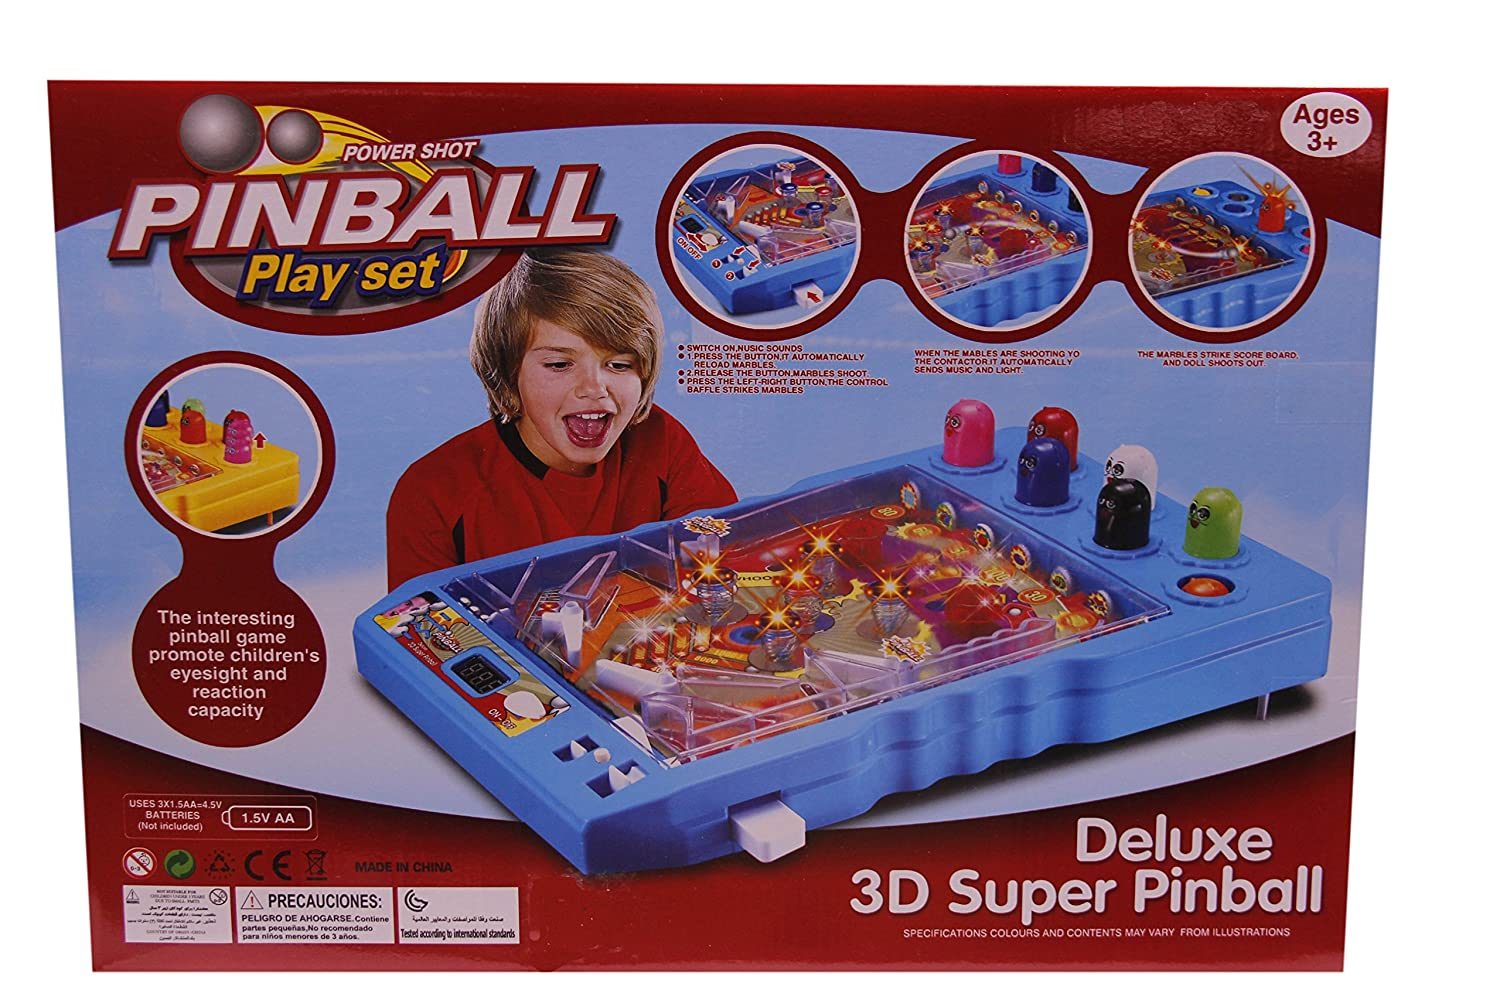 Pinball construction set - Buy Smiles Creation Powershot Pinball Play Set Toy For Kids Online At Low Prices In India Amazon In